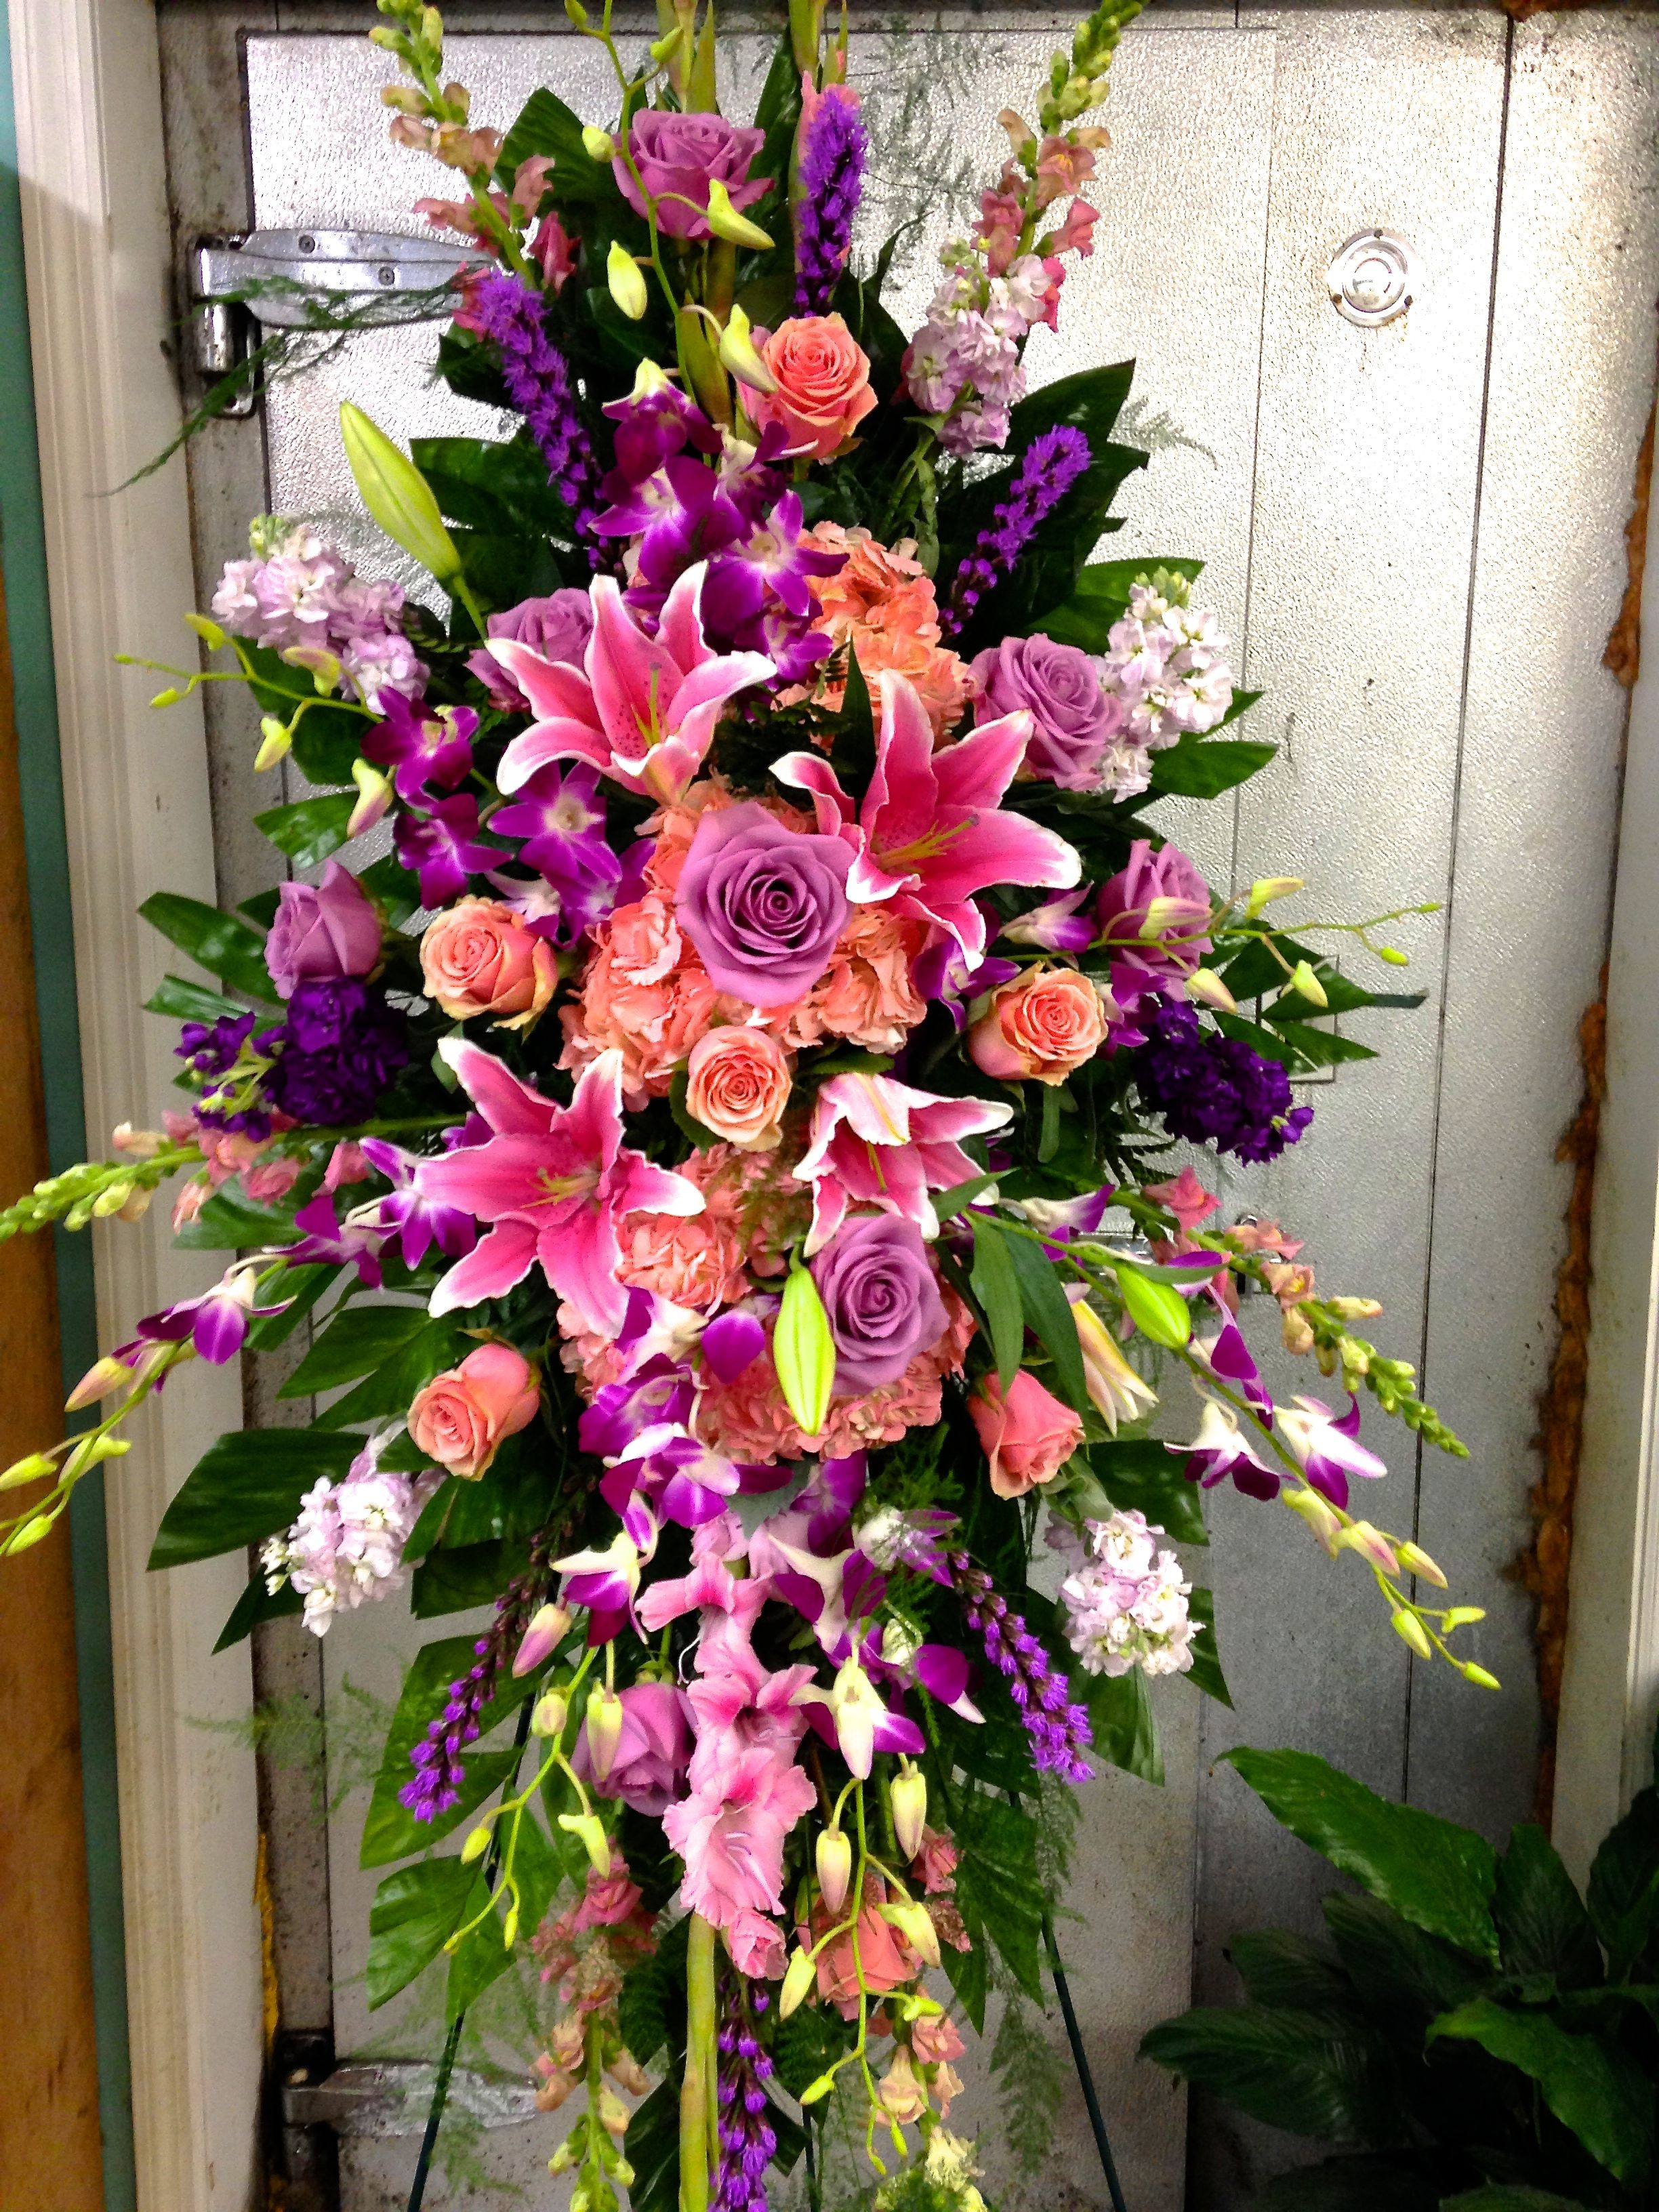 Funeral standing spray with pinks and violets focal flowers being funeral standing spray with pinks and violets focal flowers being pink roses and stargazer lilies izmirmasajfo